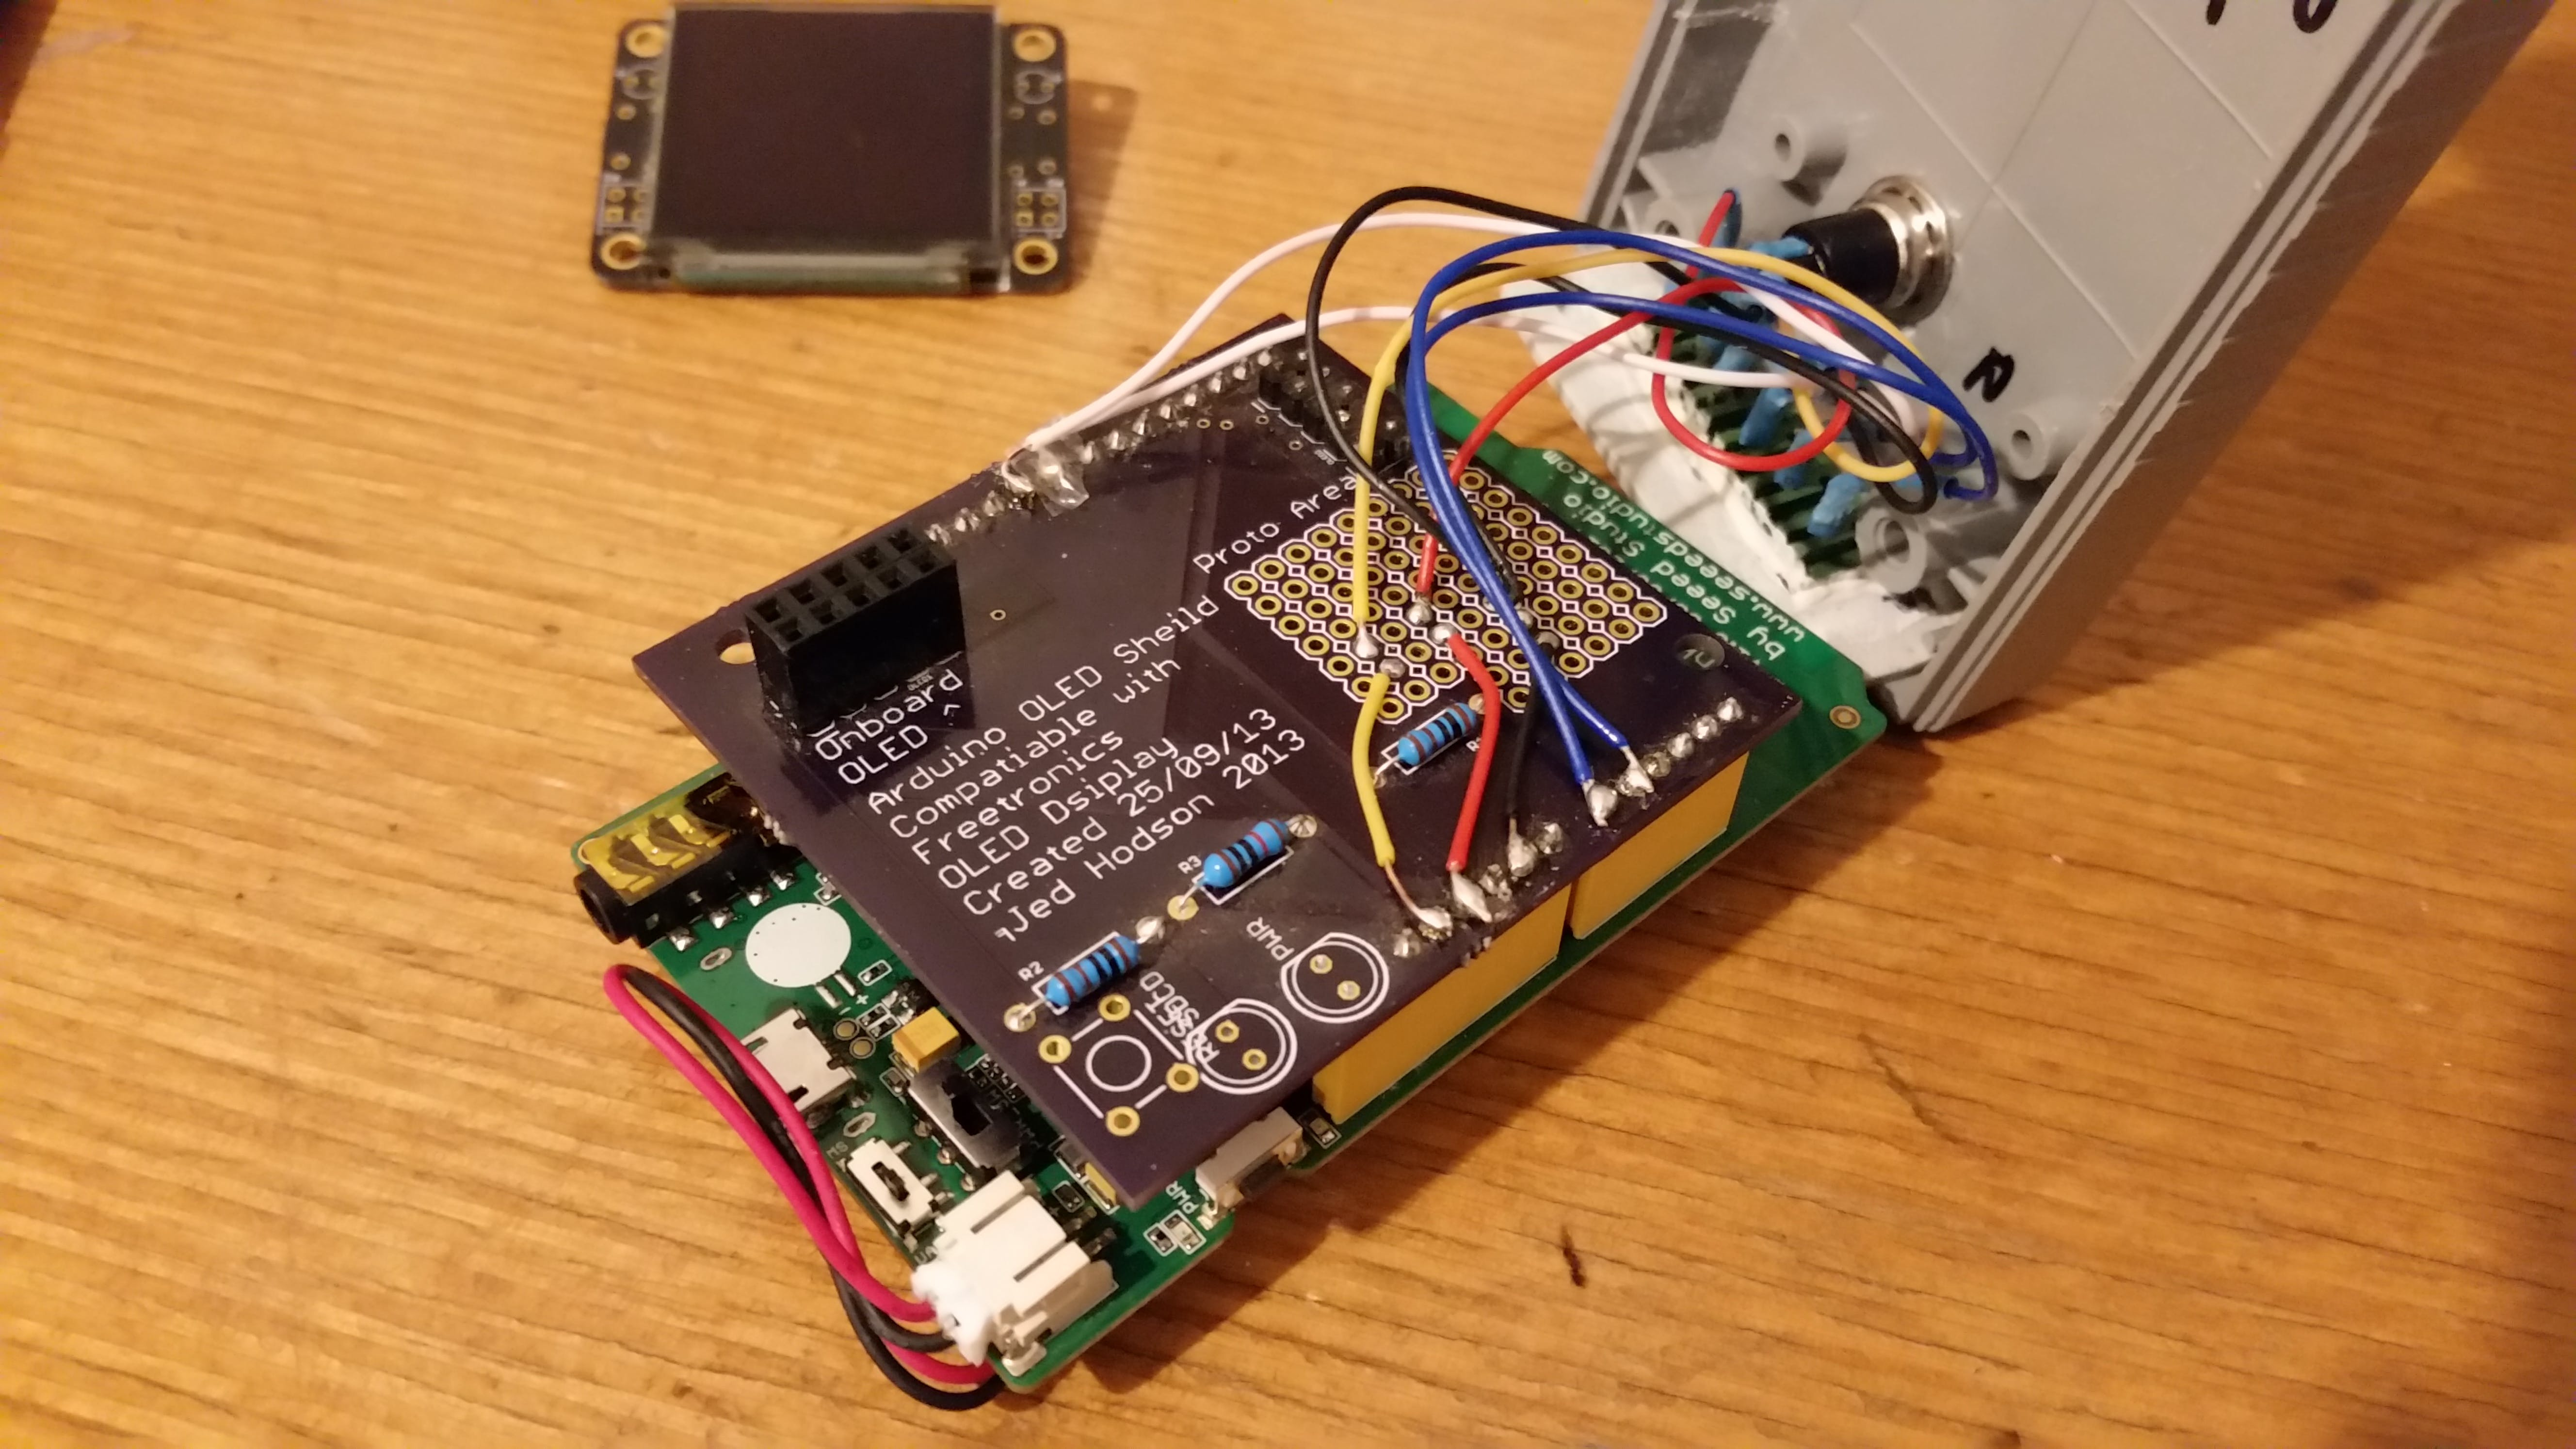 Inside of case - OLED Shield on LinkIt One wired up to terminal block and button